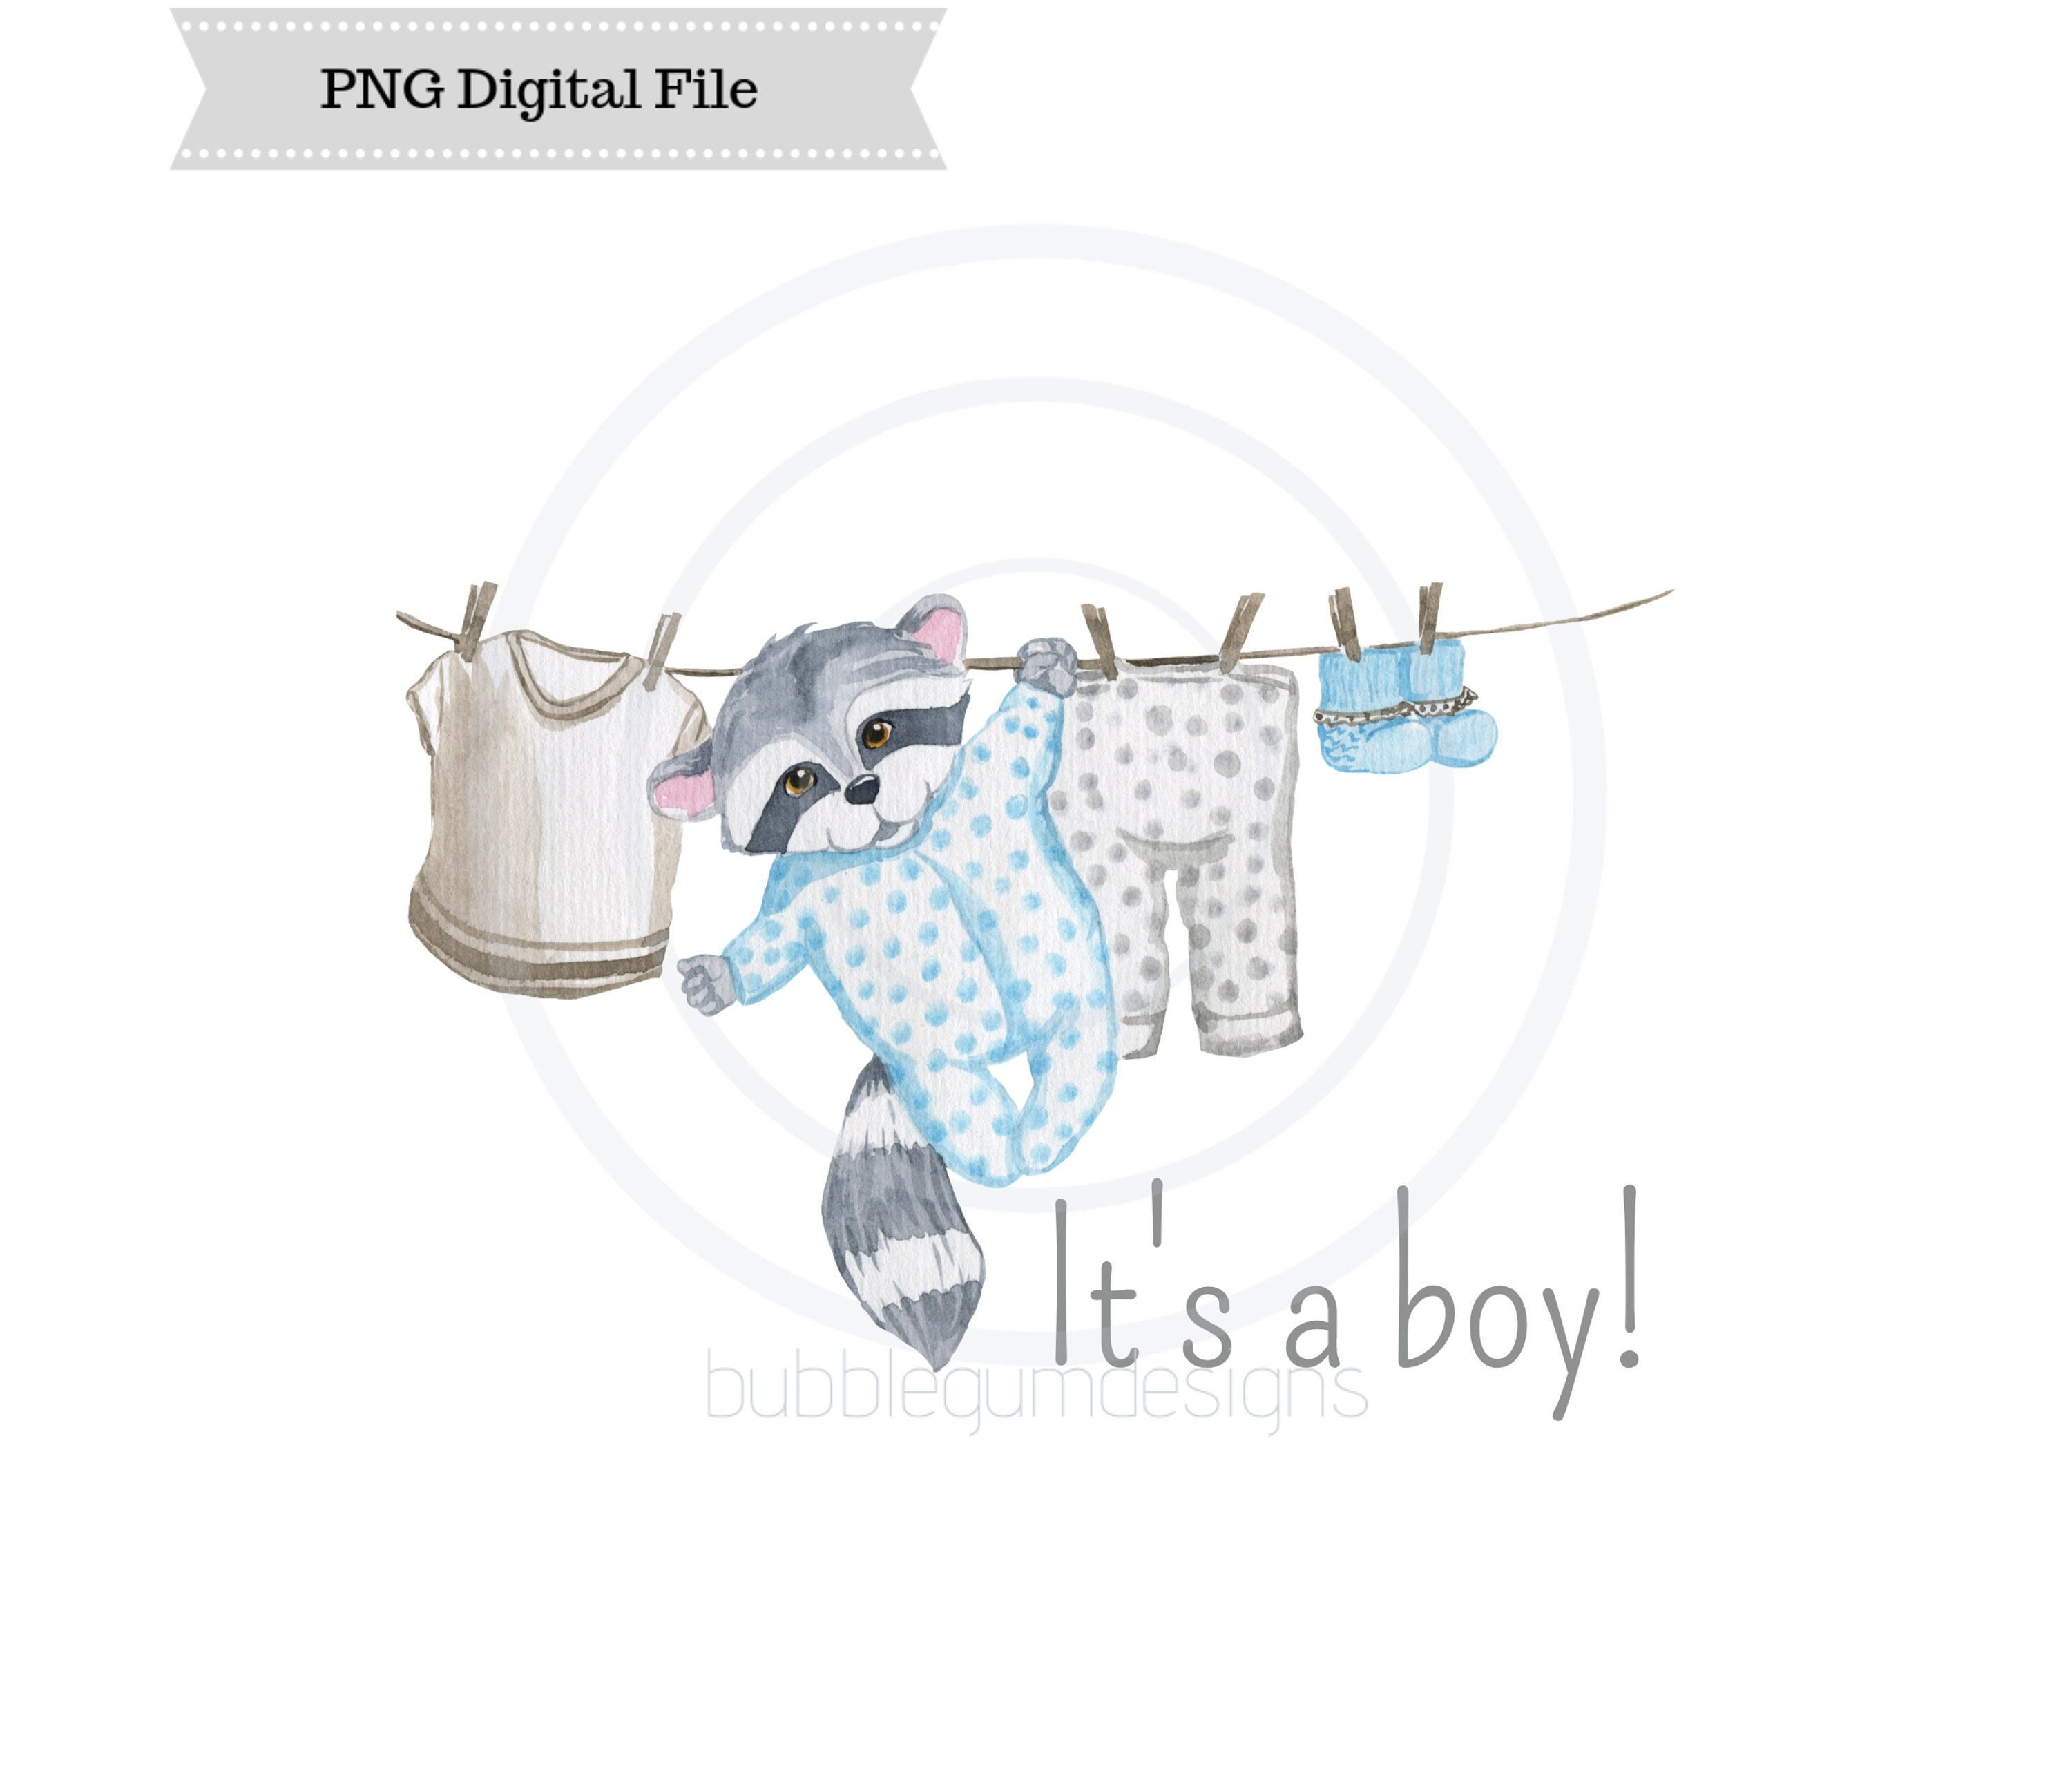 It S A Boy Png New Baby Sublimation Design Baby Boy Png Birth Congratulations Png Instant Digi New Baby Products Birth Congratulations Baby Bodysuit Design